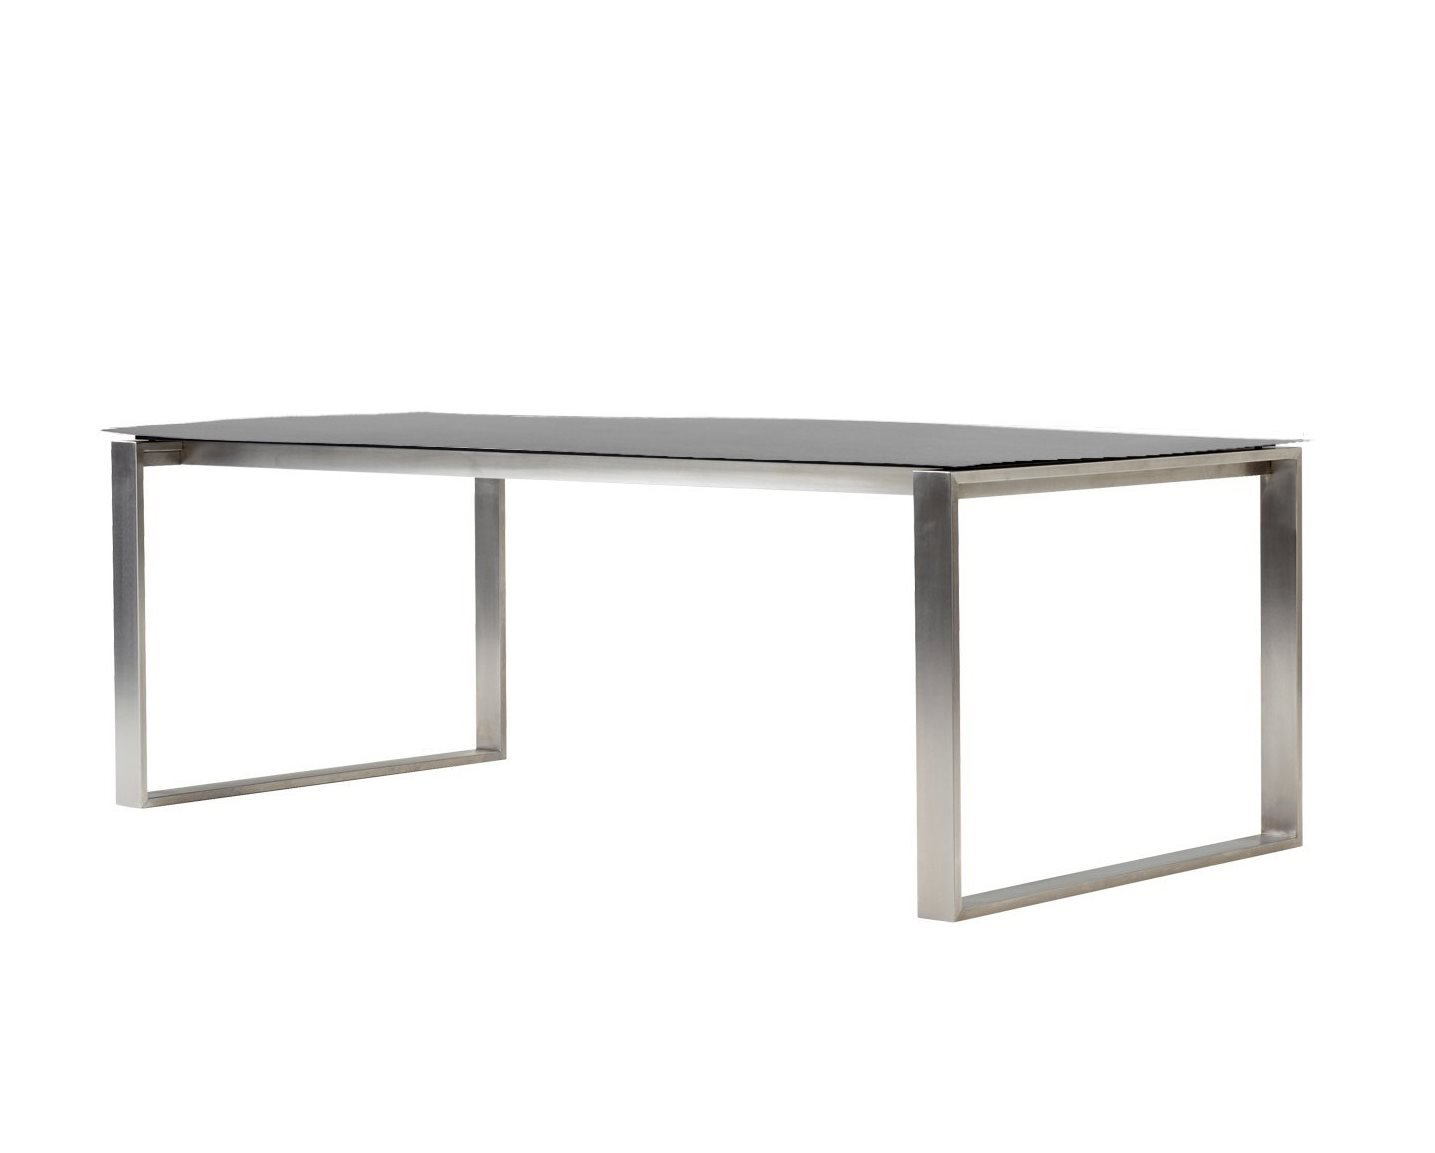 Edge Dining Table from Cane-line, designed by Strand+Hvass